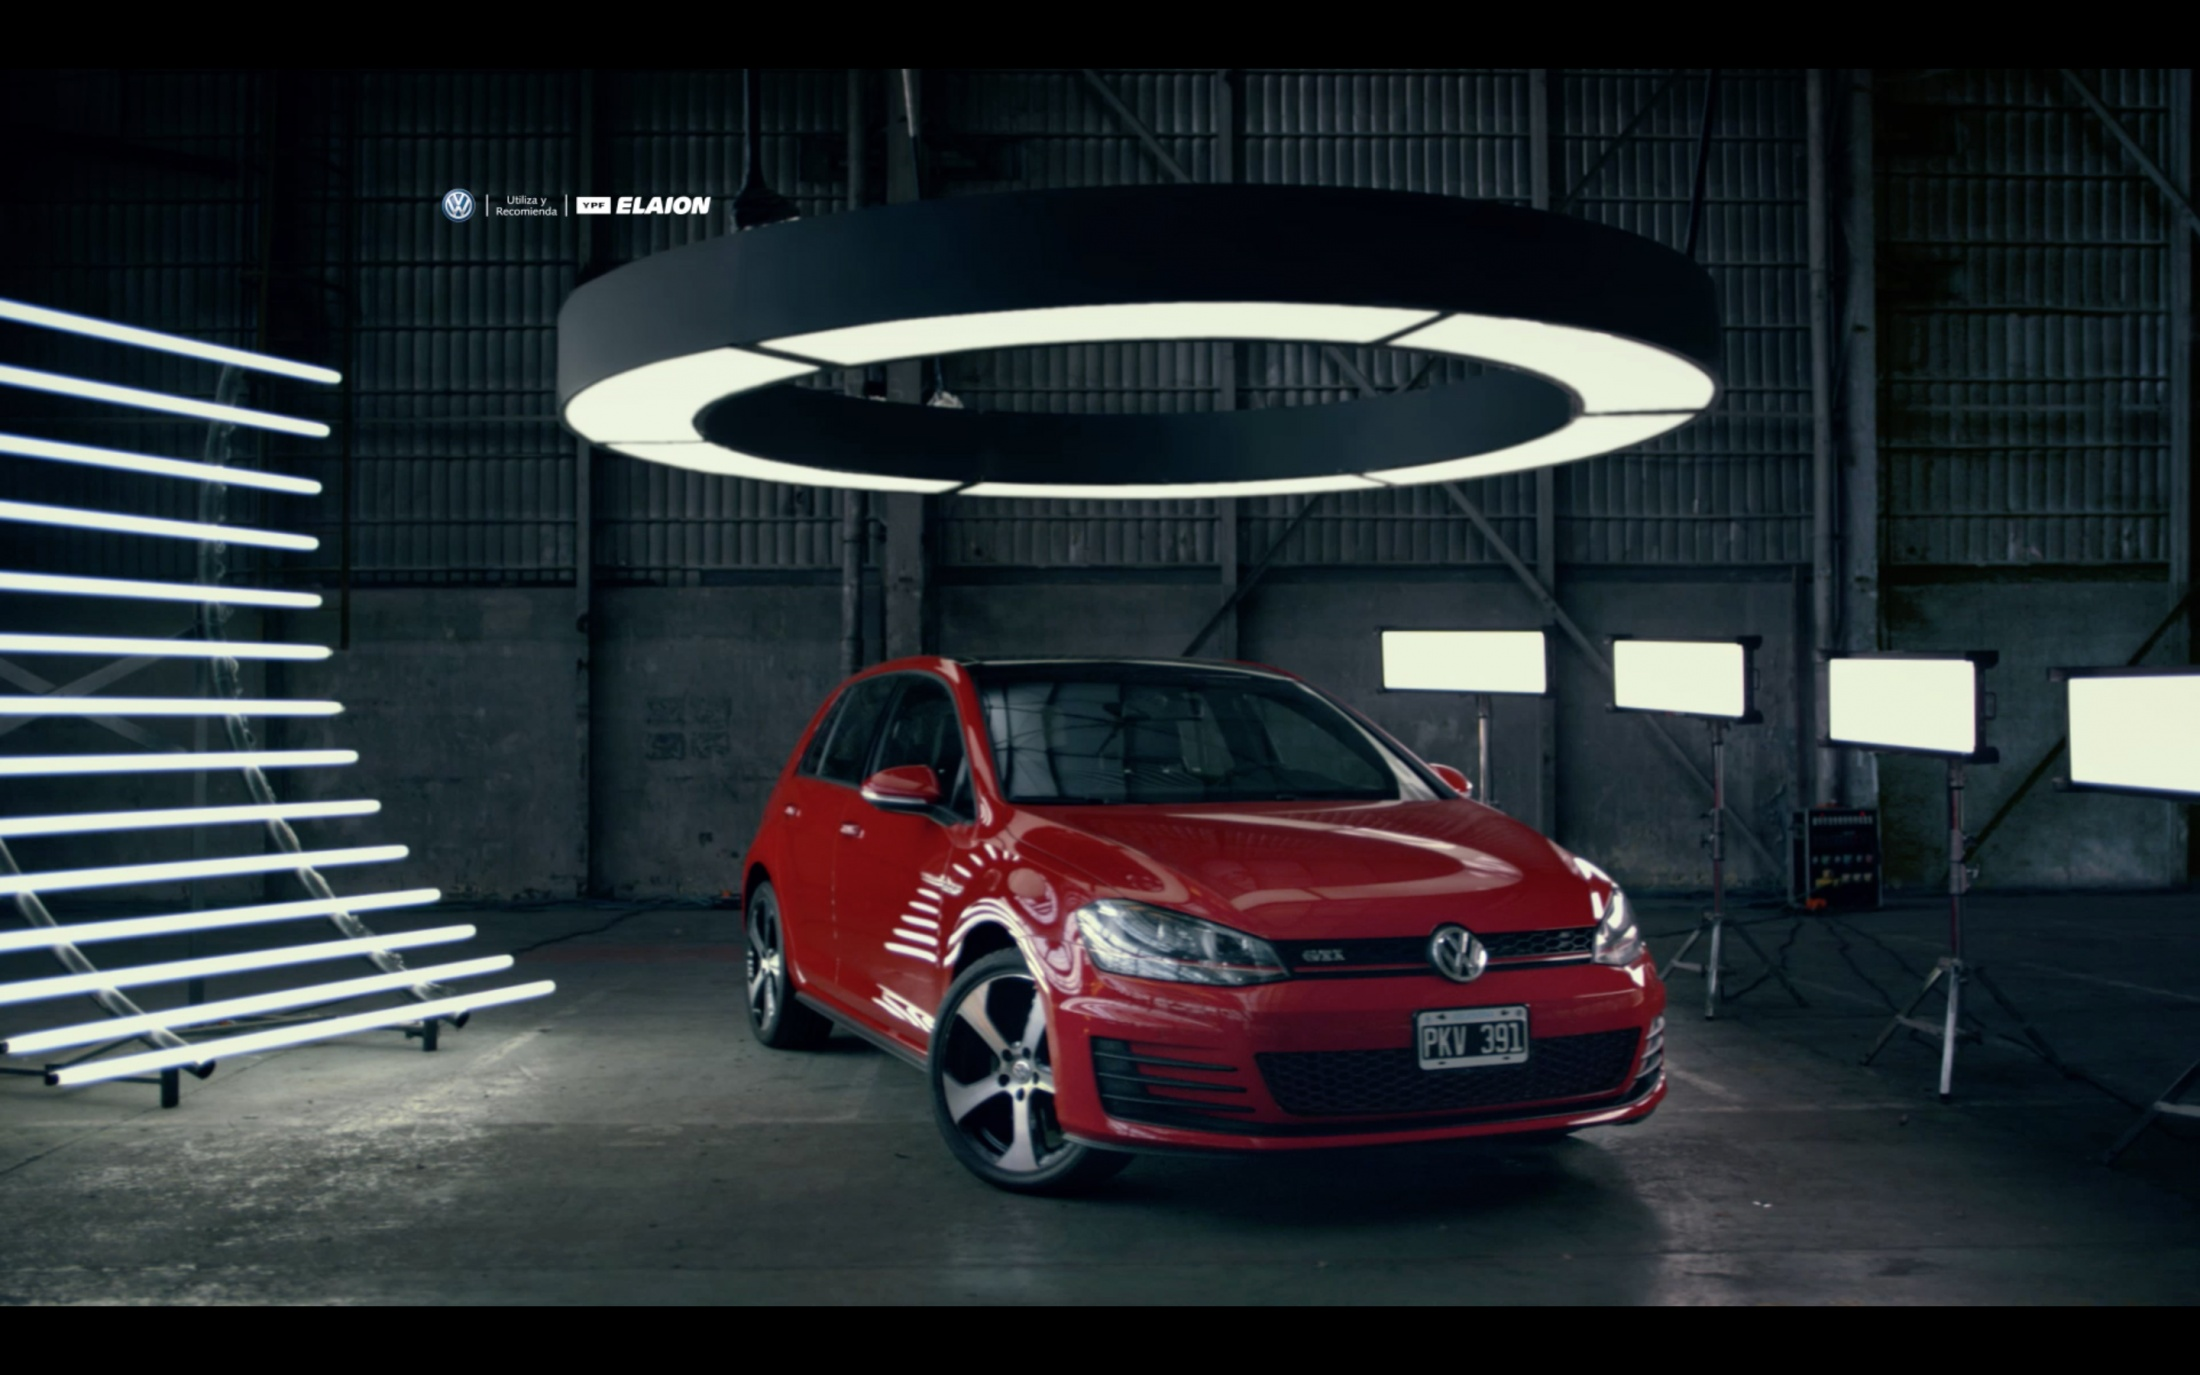 Image Media for Golf GTI - Fast Film - Slow motion